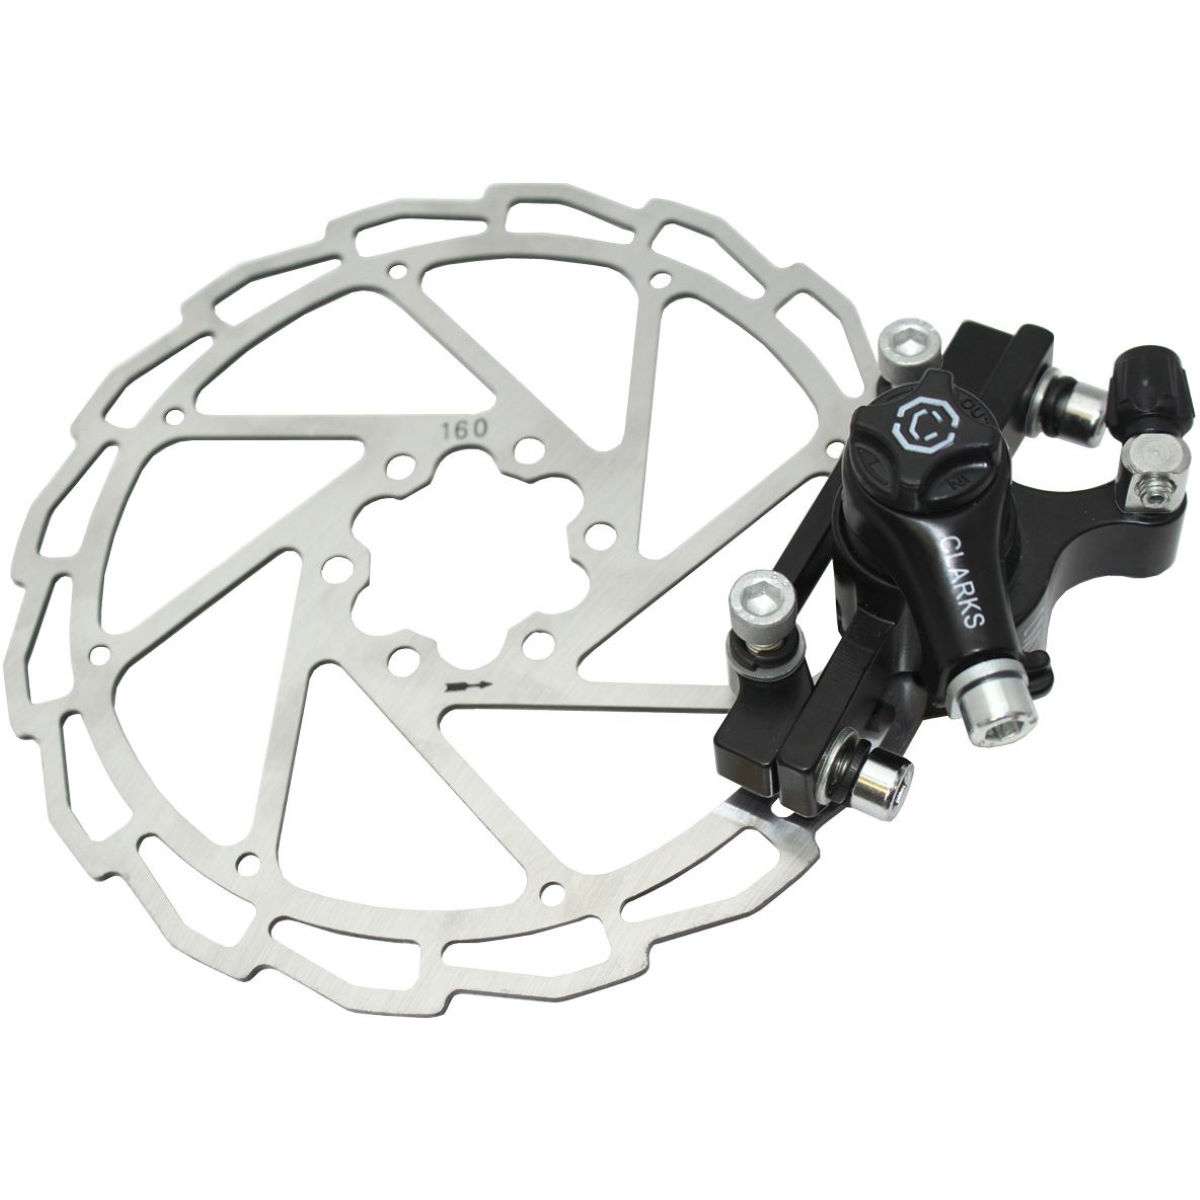 Clarks CMD-11 Mechanical Disc Brake + Rotor - Pinzas para frenos de disco